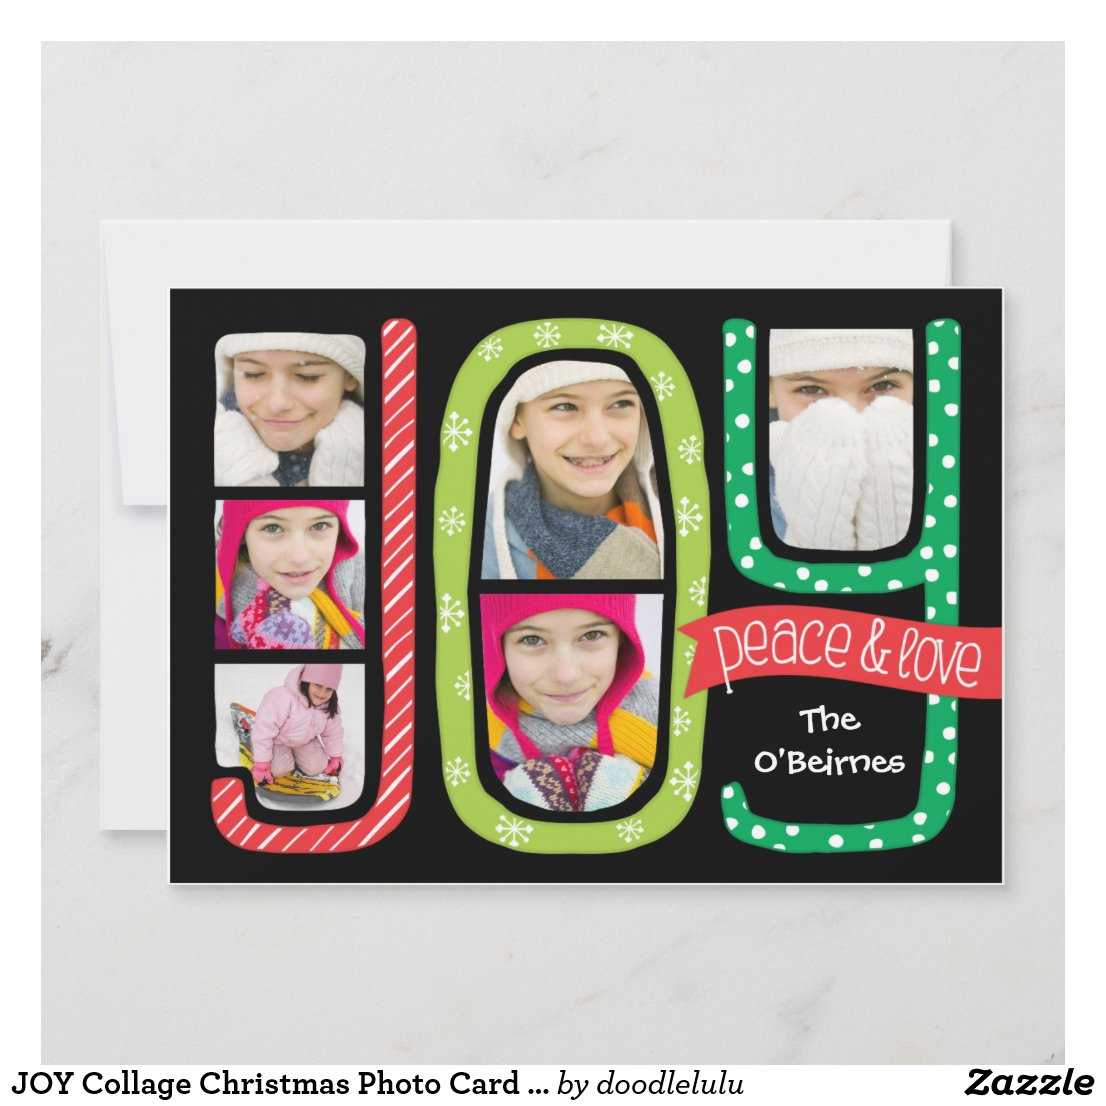 JOY Collage Christmas Photo Card Hand Drawn